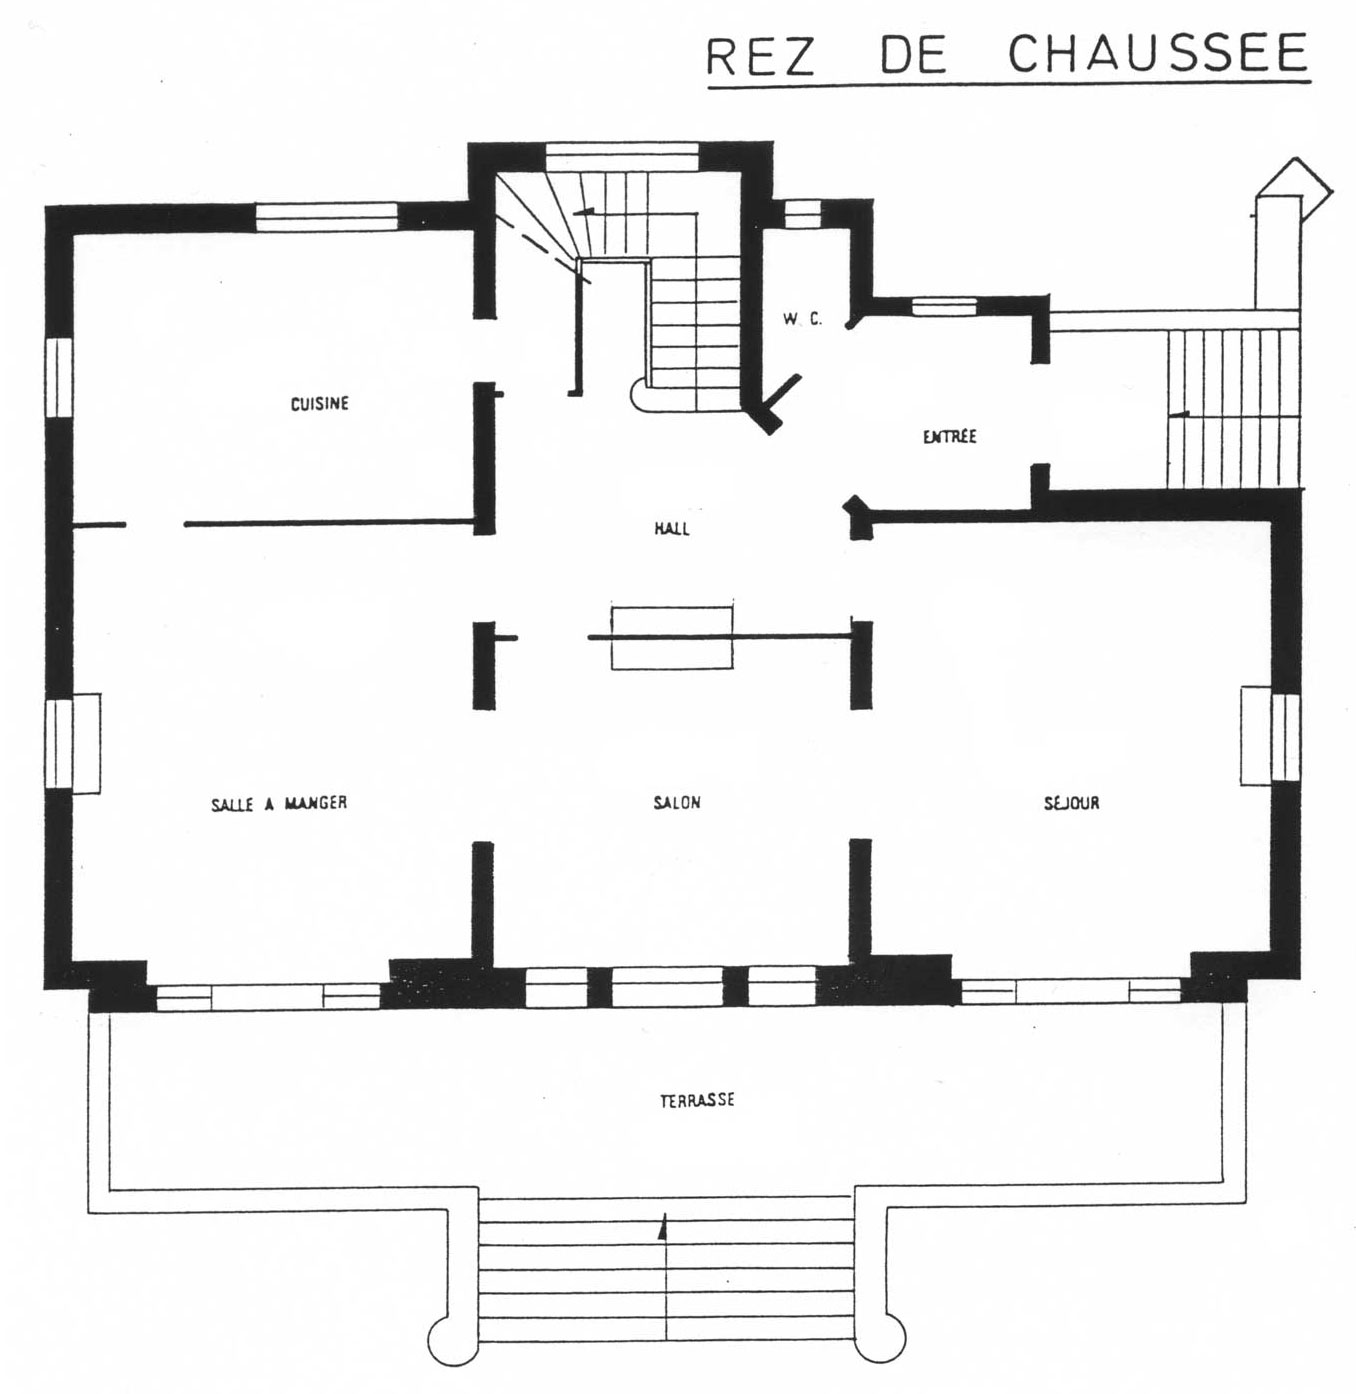 La villa la hubloti re villa berthe for Plans de dessins de porche